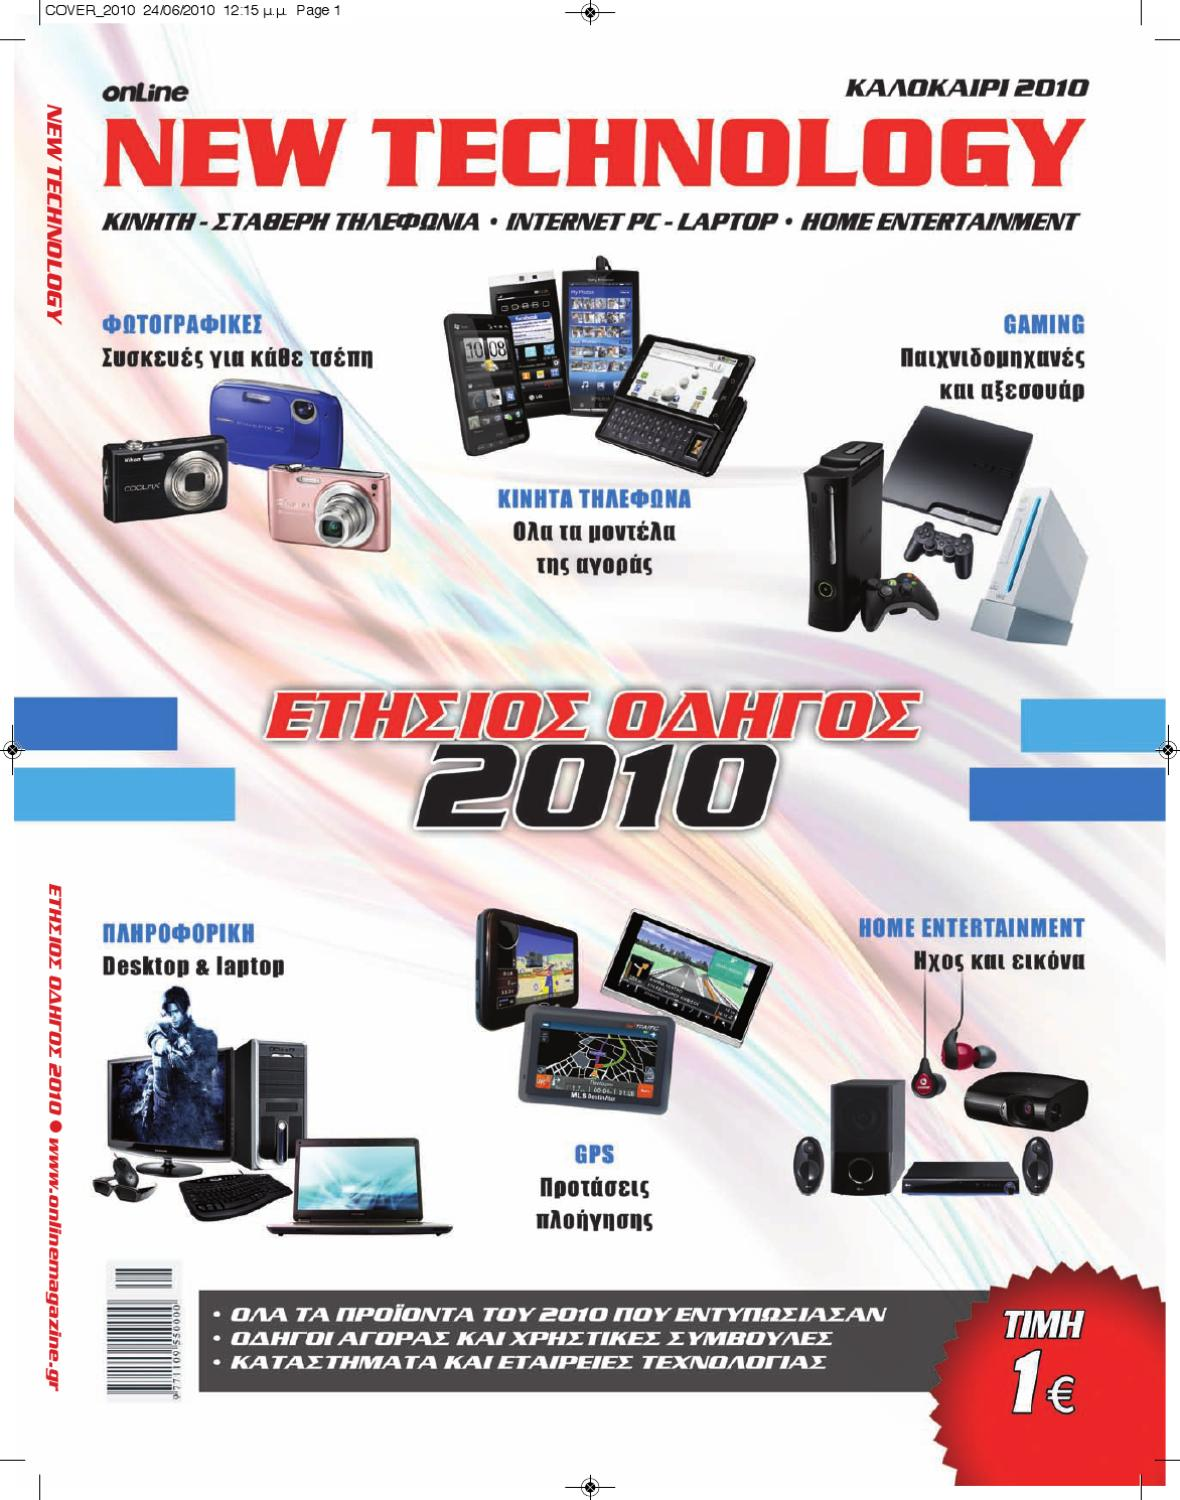 New Technology Annual Guide 2010 by DIAKOFTO PRESS - issuu 4487dd045ad